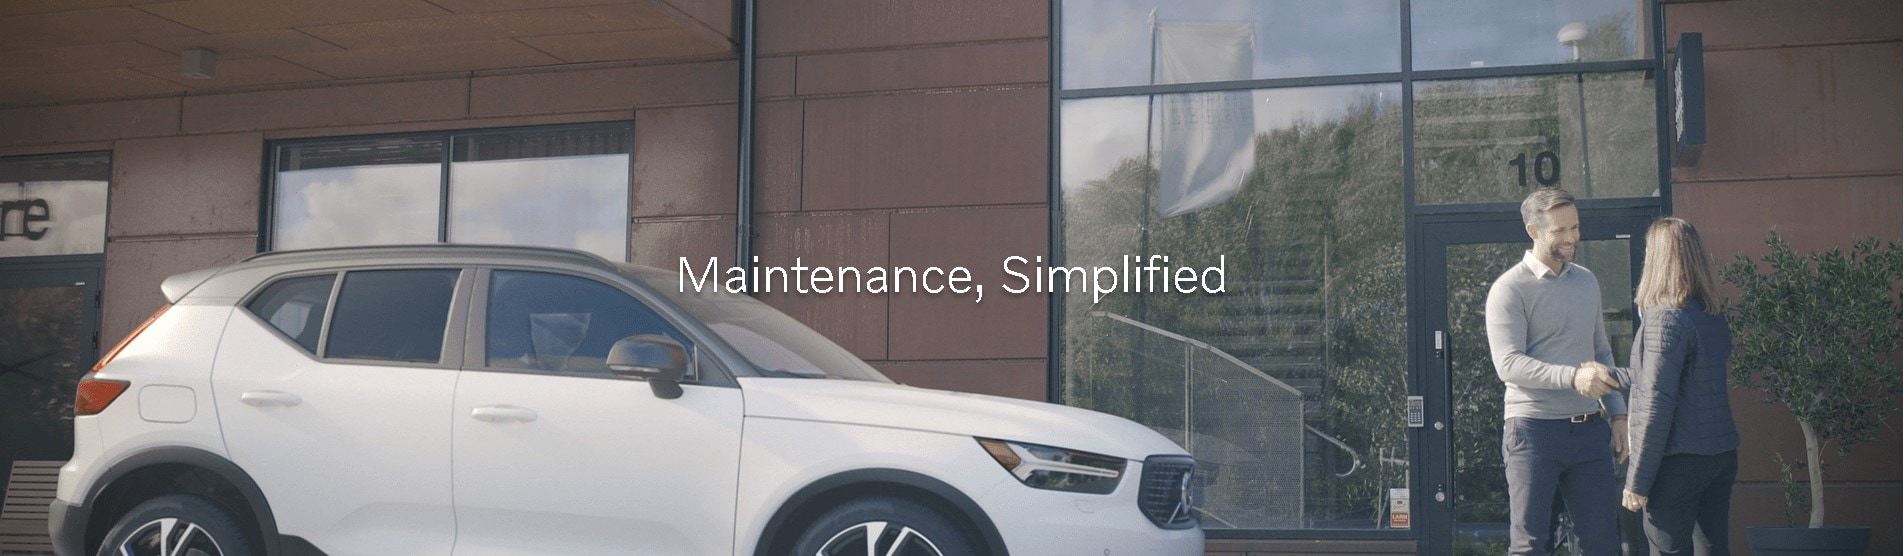 Volvo Valet Program available at Culver City Volvo helps you with service